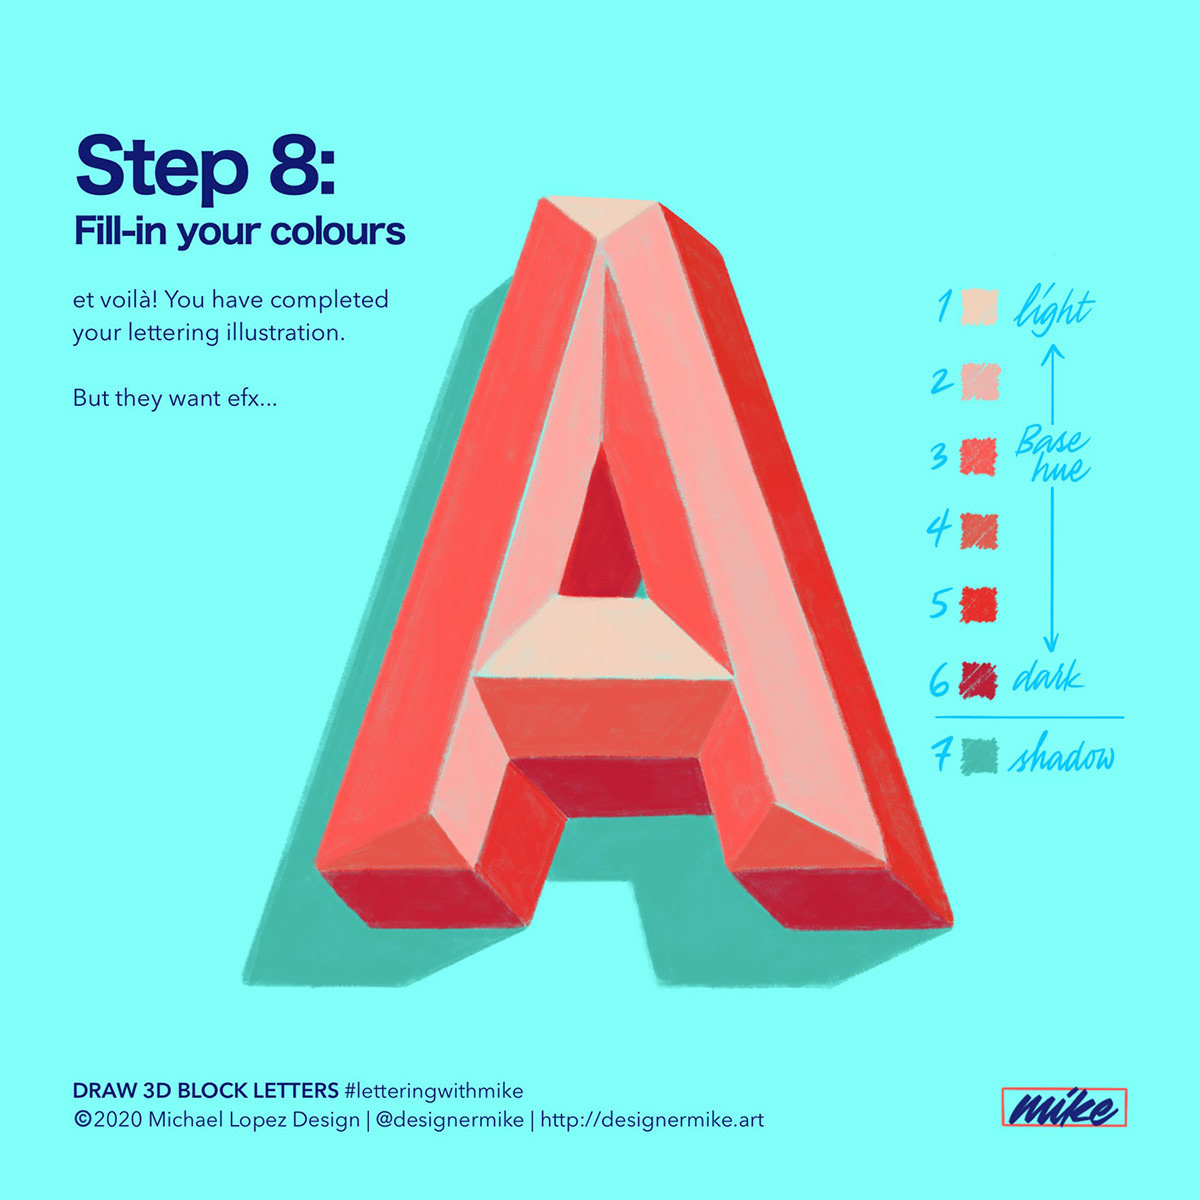 Designer Mike Lettering Art And Design How To Draw 3d Block Letters